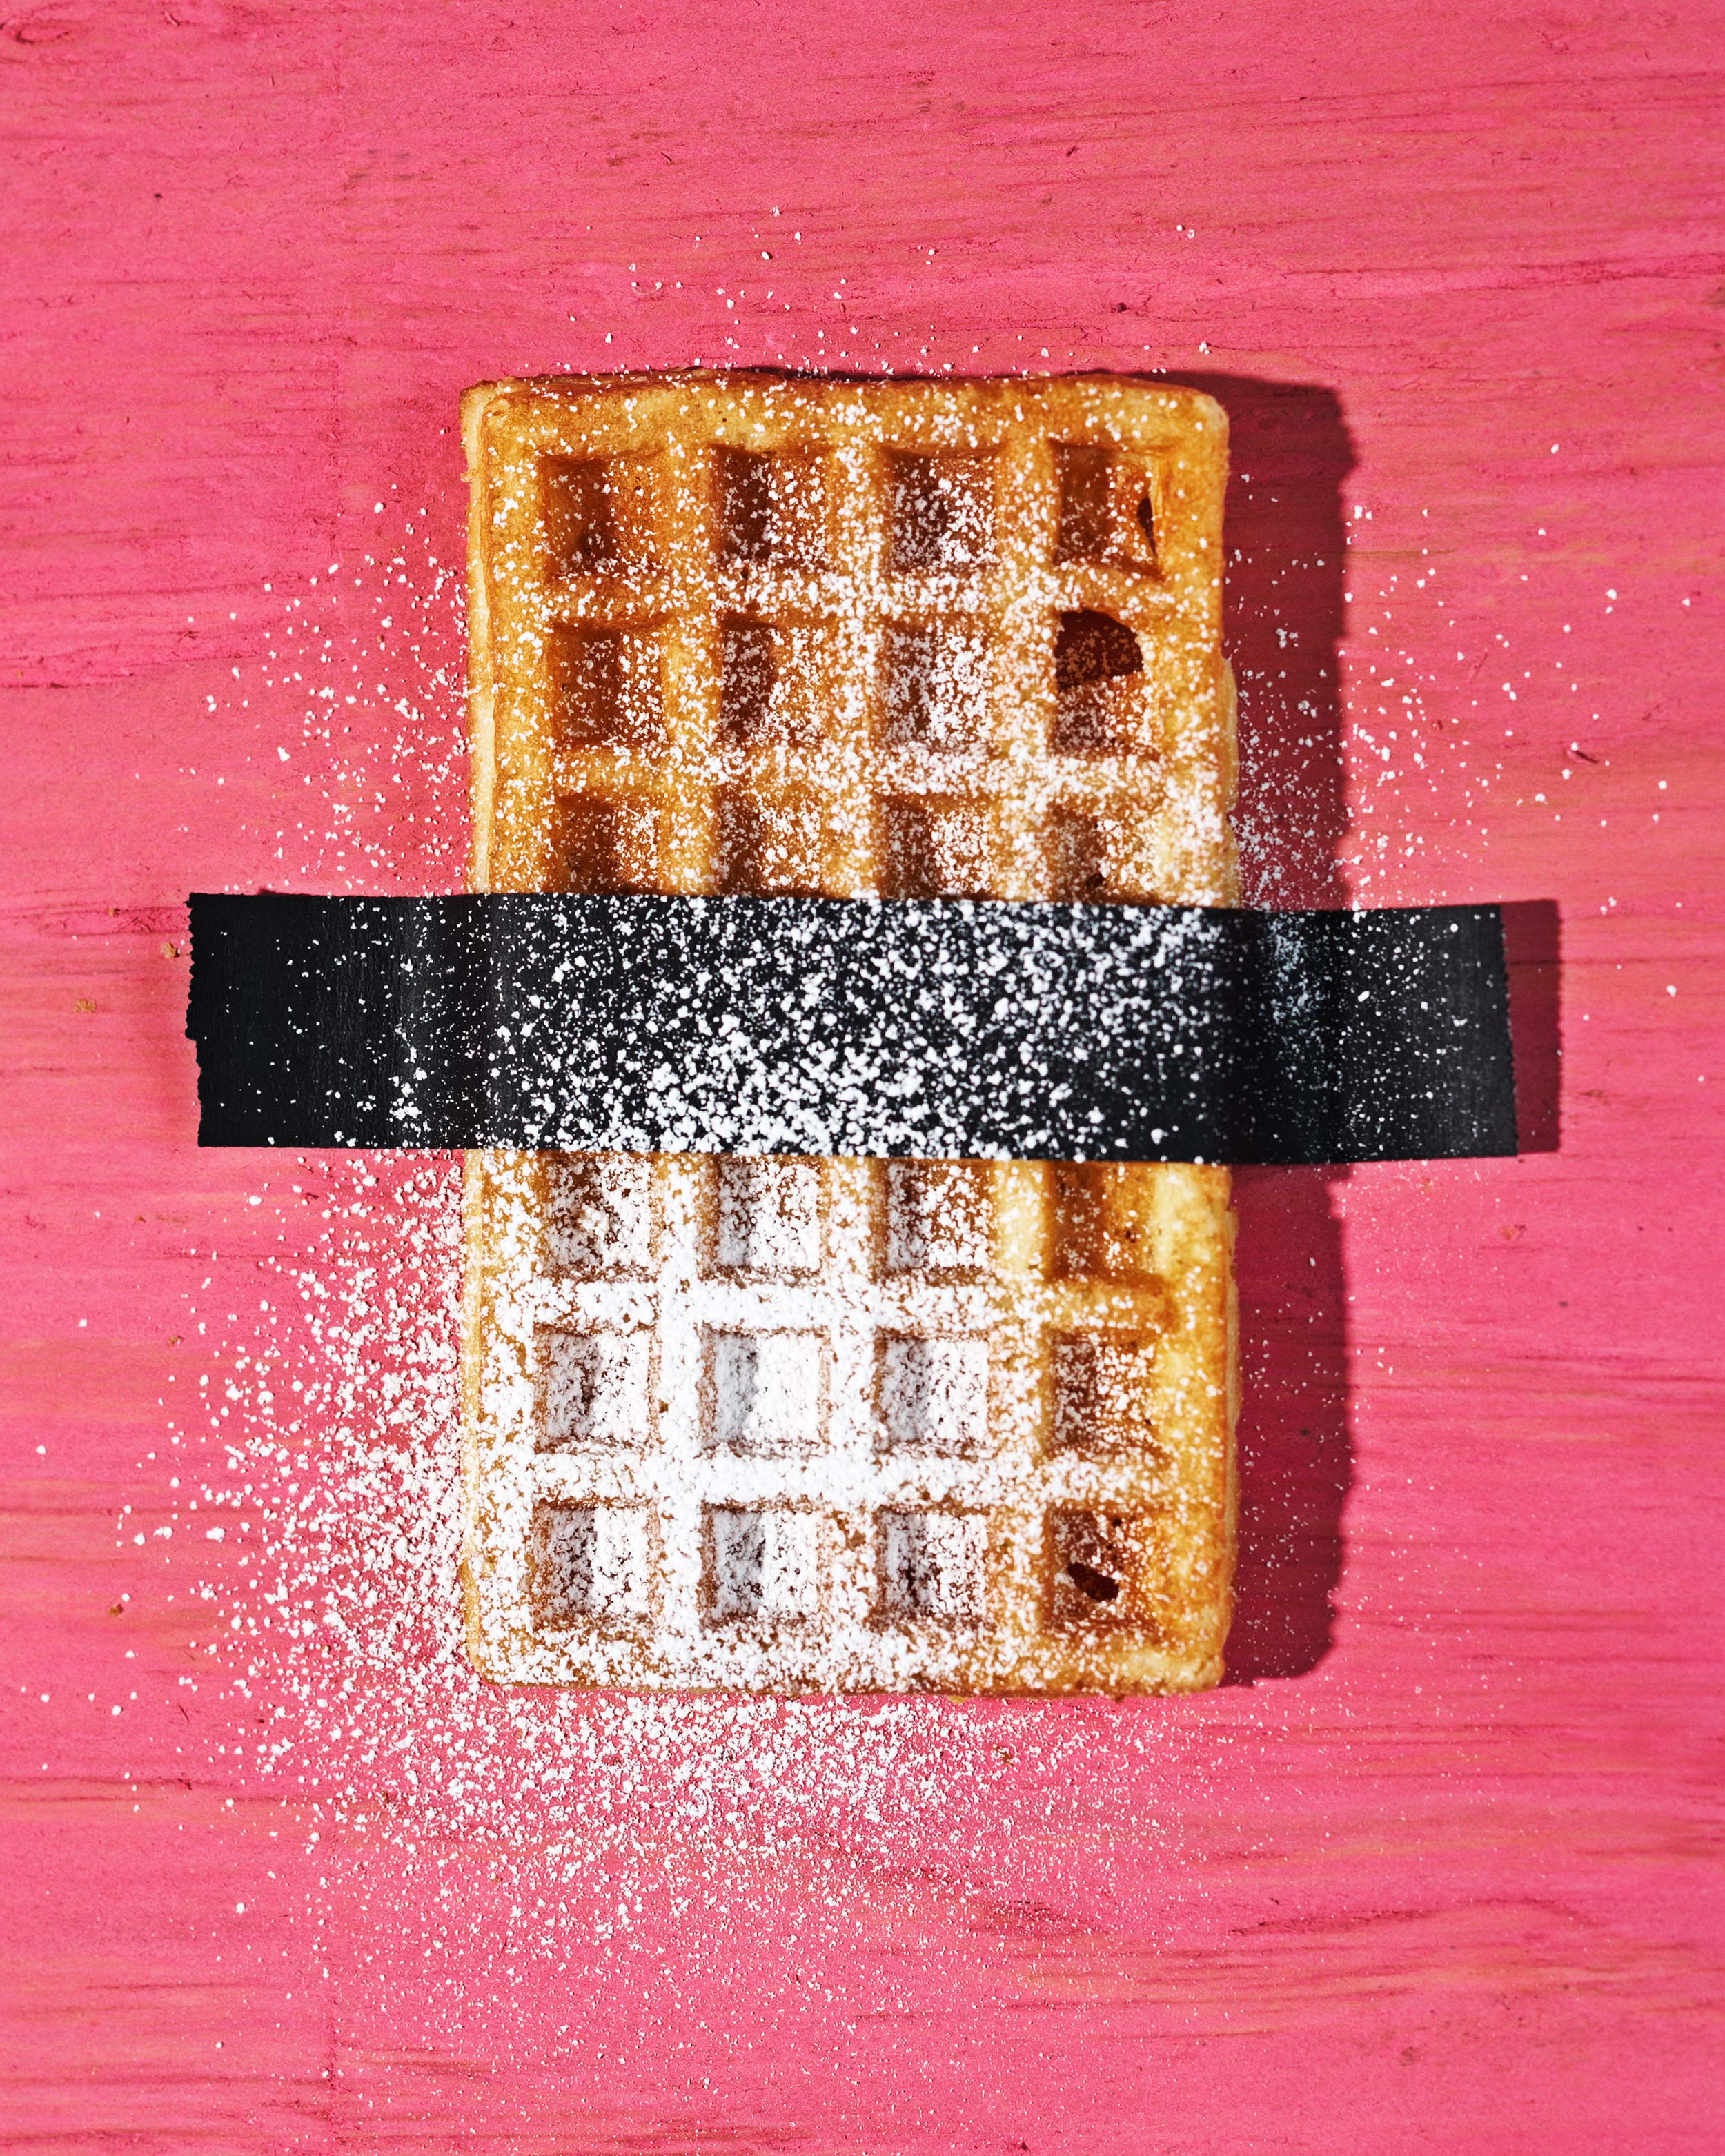 A-Little-Trouble-With-The-Waffle-1.jpg